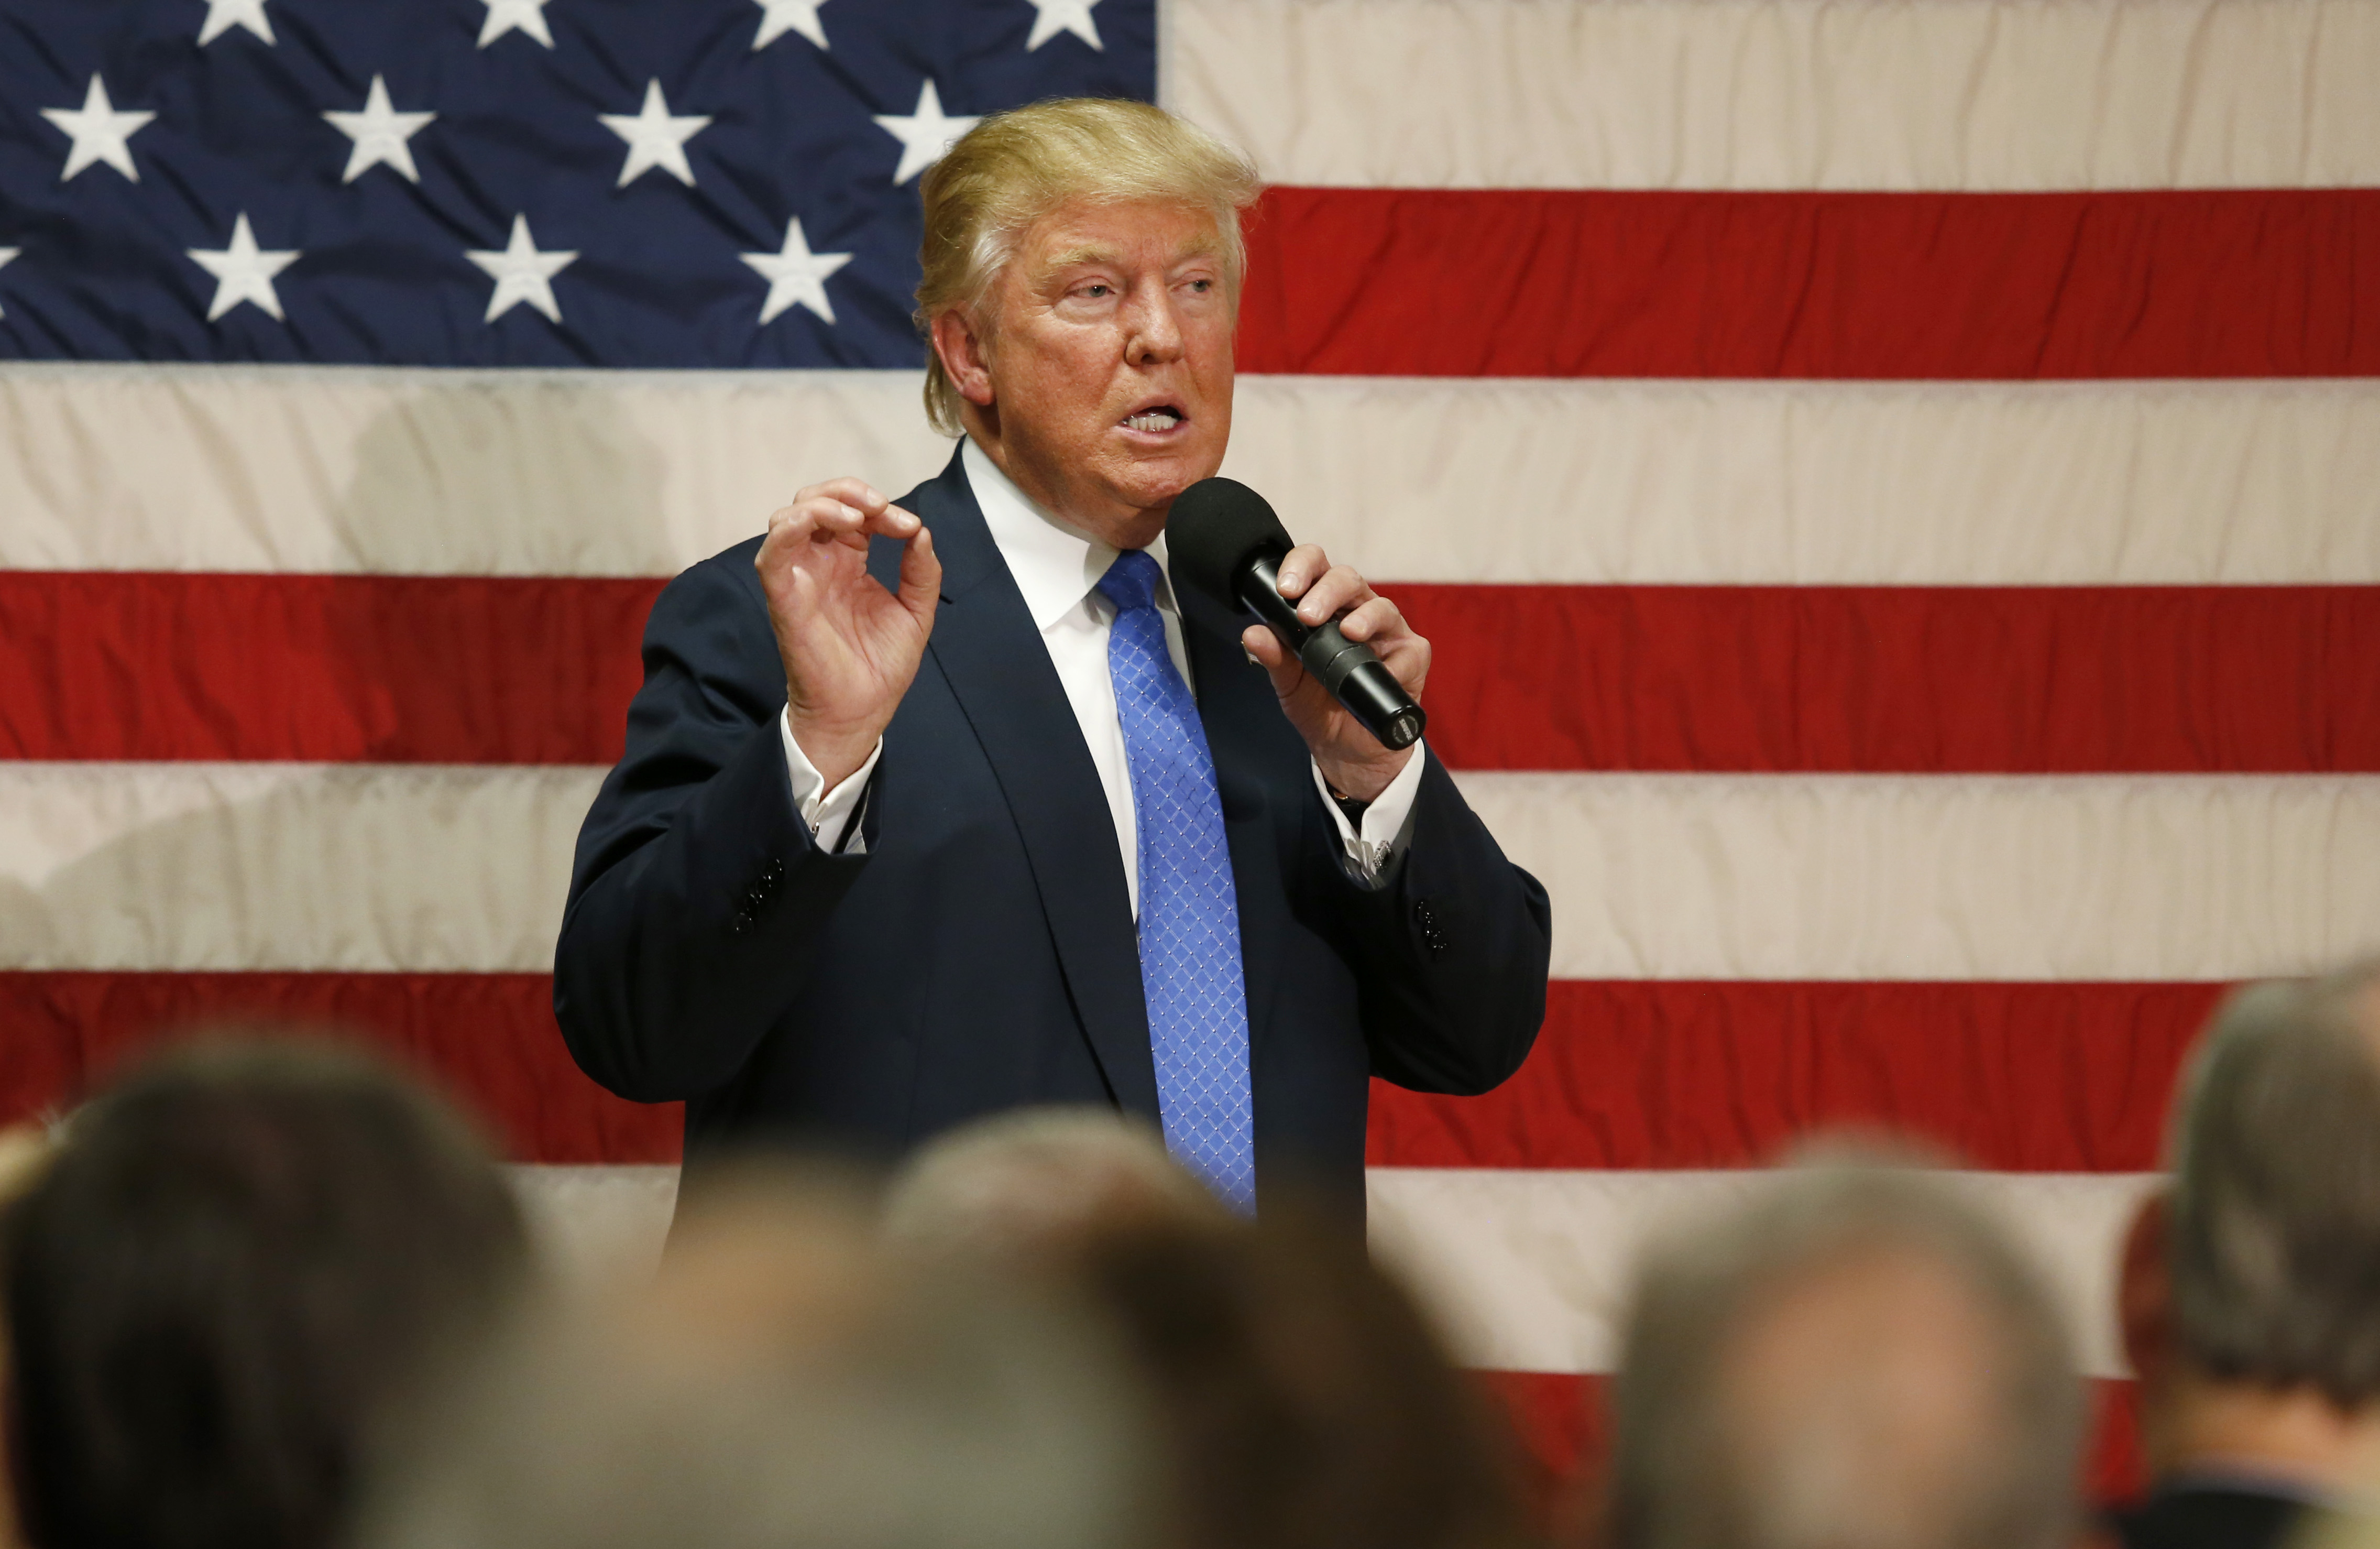 U.S. Republican presidential candidate Donald Trump speaks at a town hall event on October 6, 2016 in Sandown, New Hampshire.